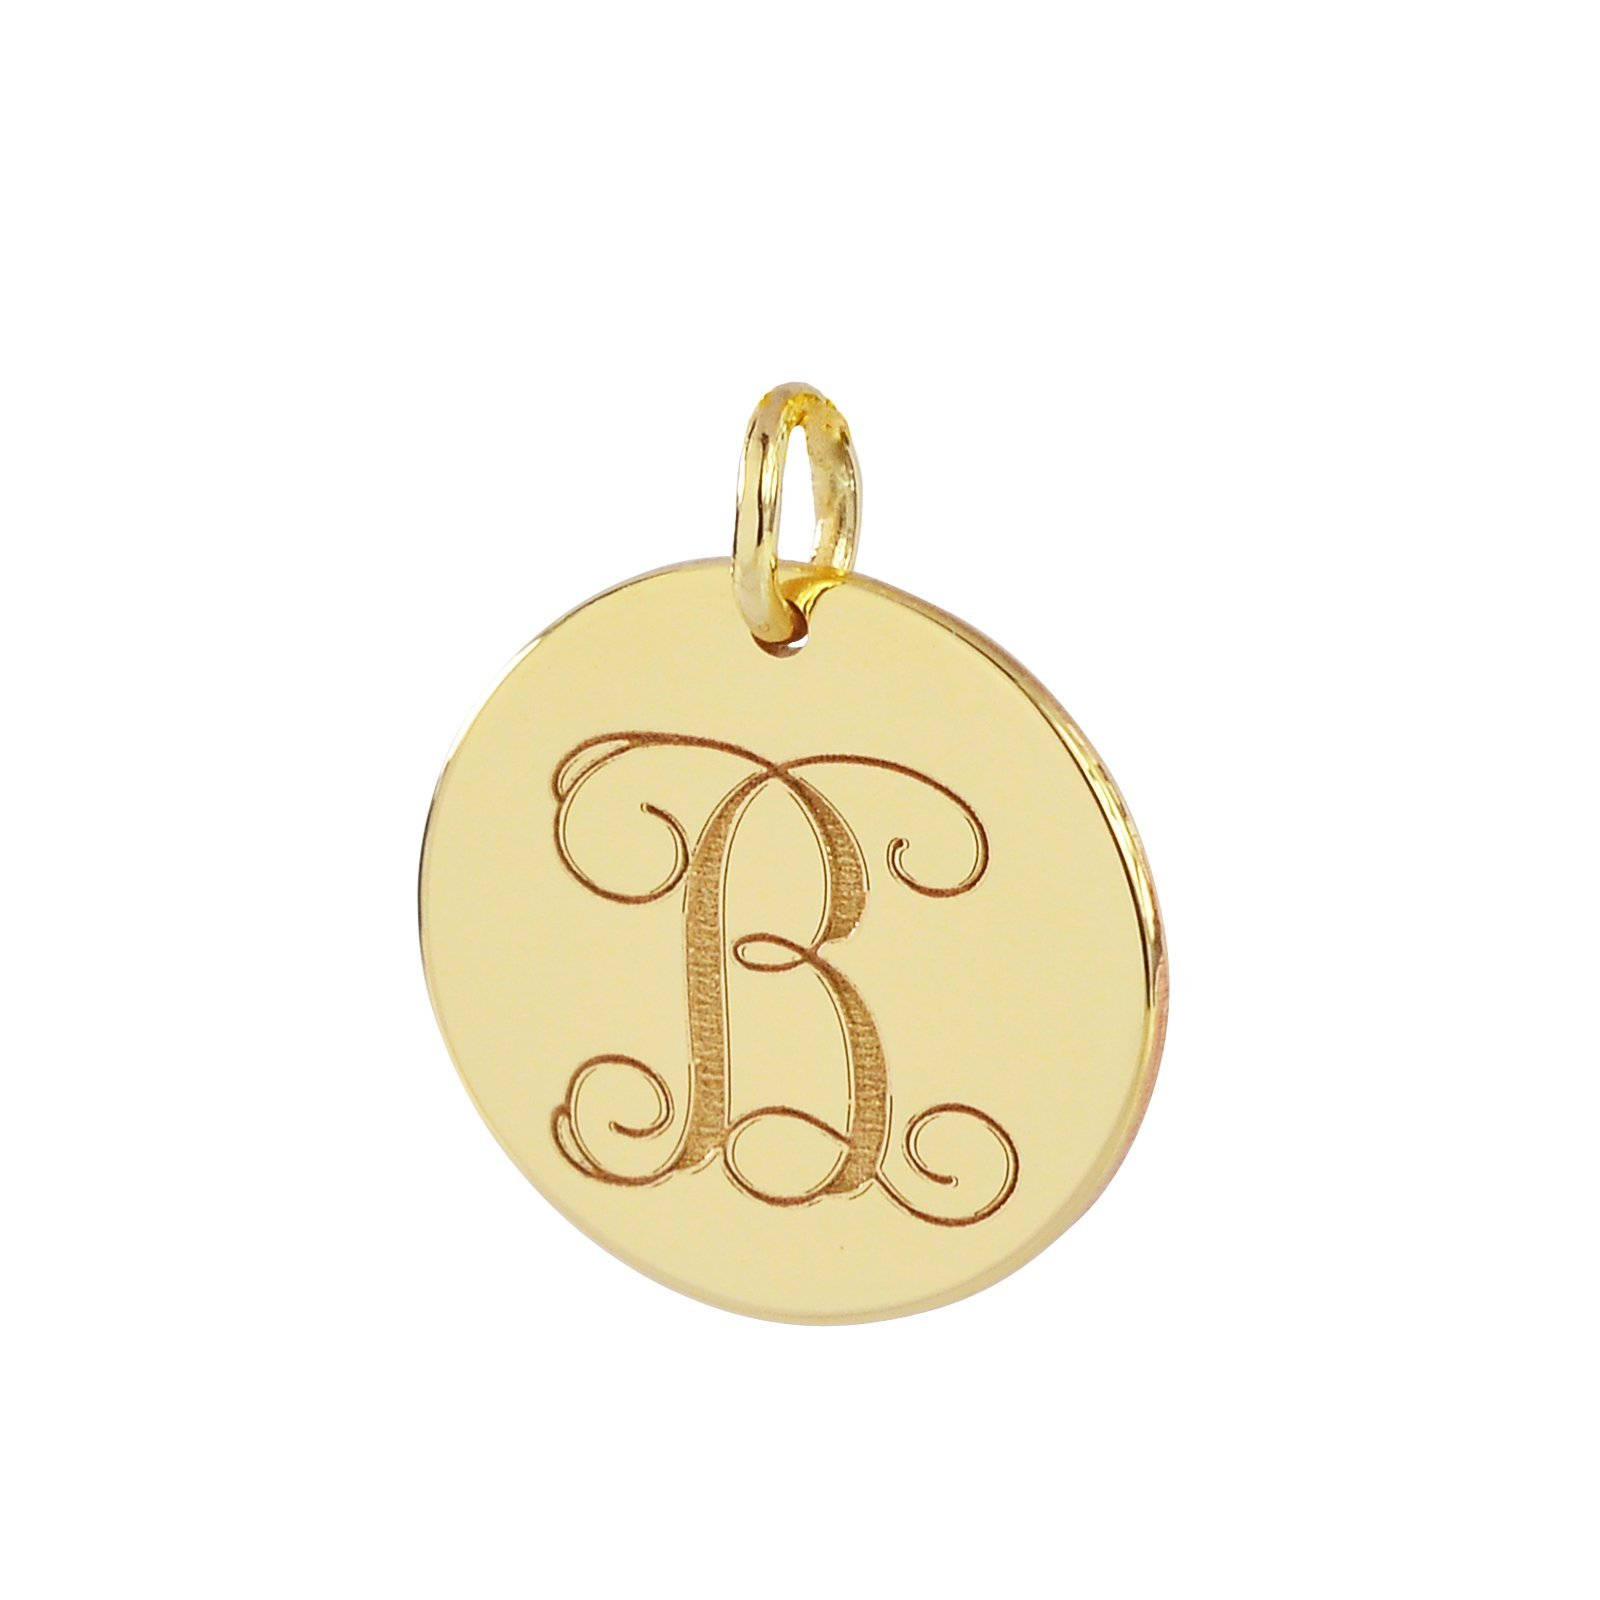 Solid 14k Gold Dainty Small Round Disc Pendant Custom Laser Engraved Both Sides